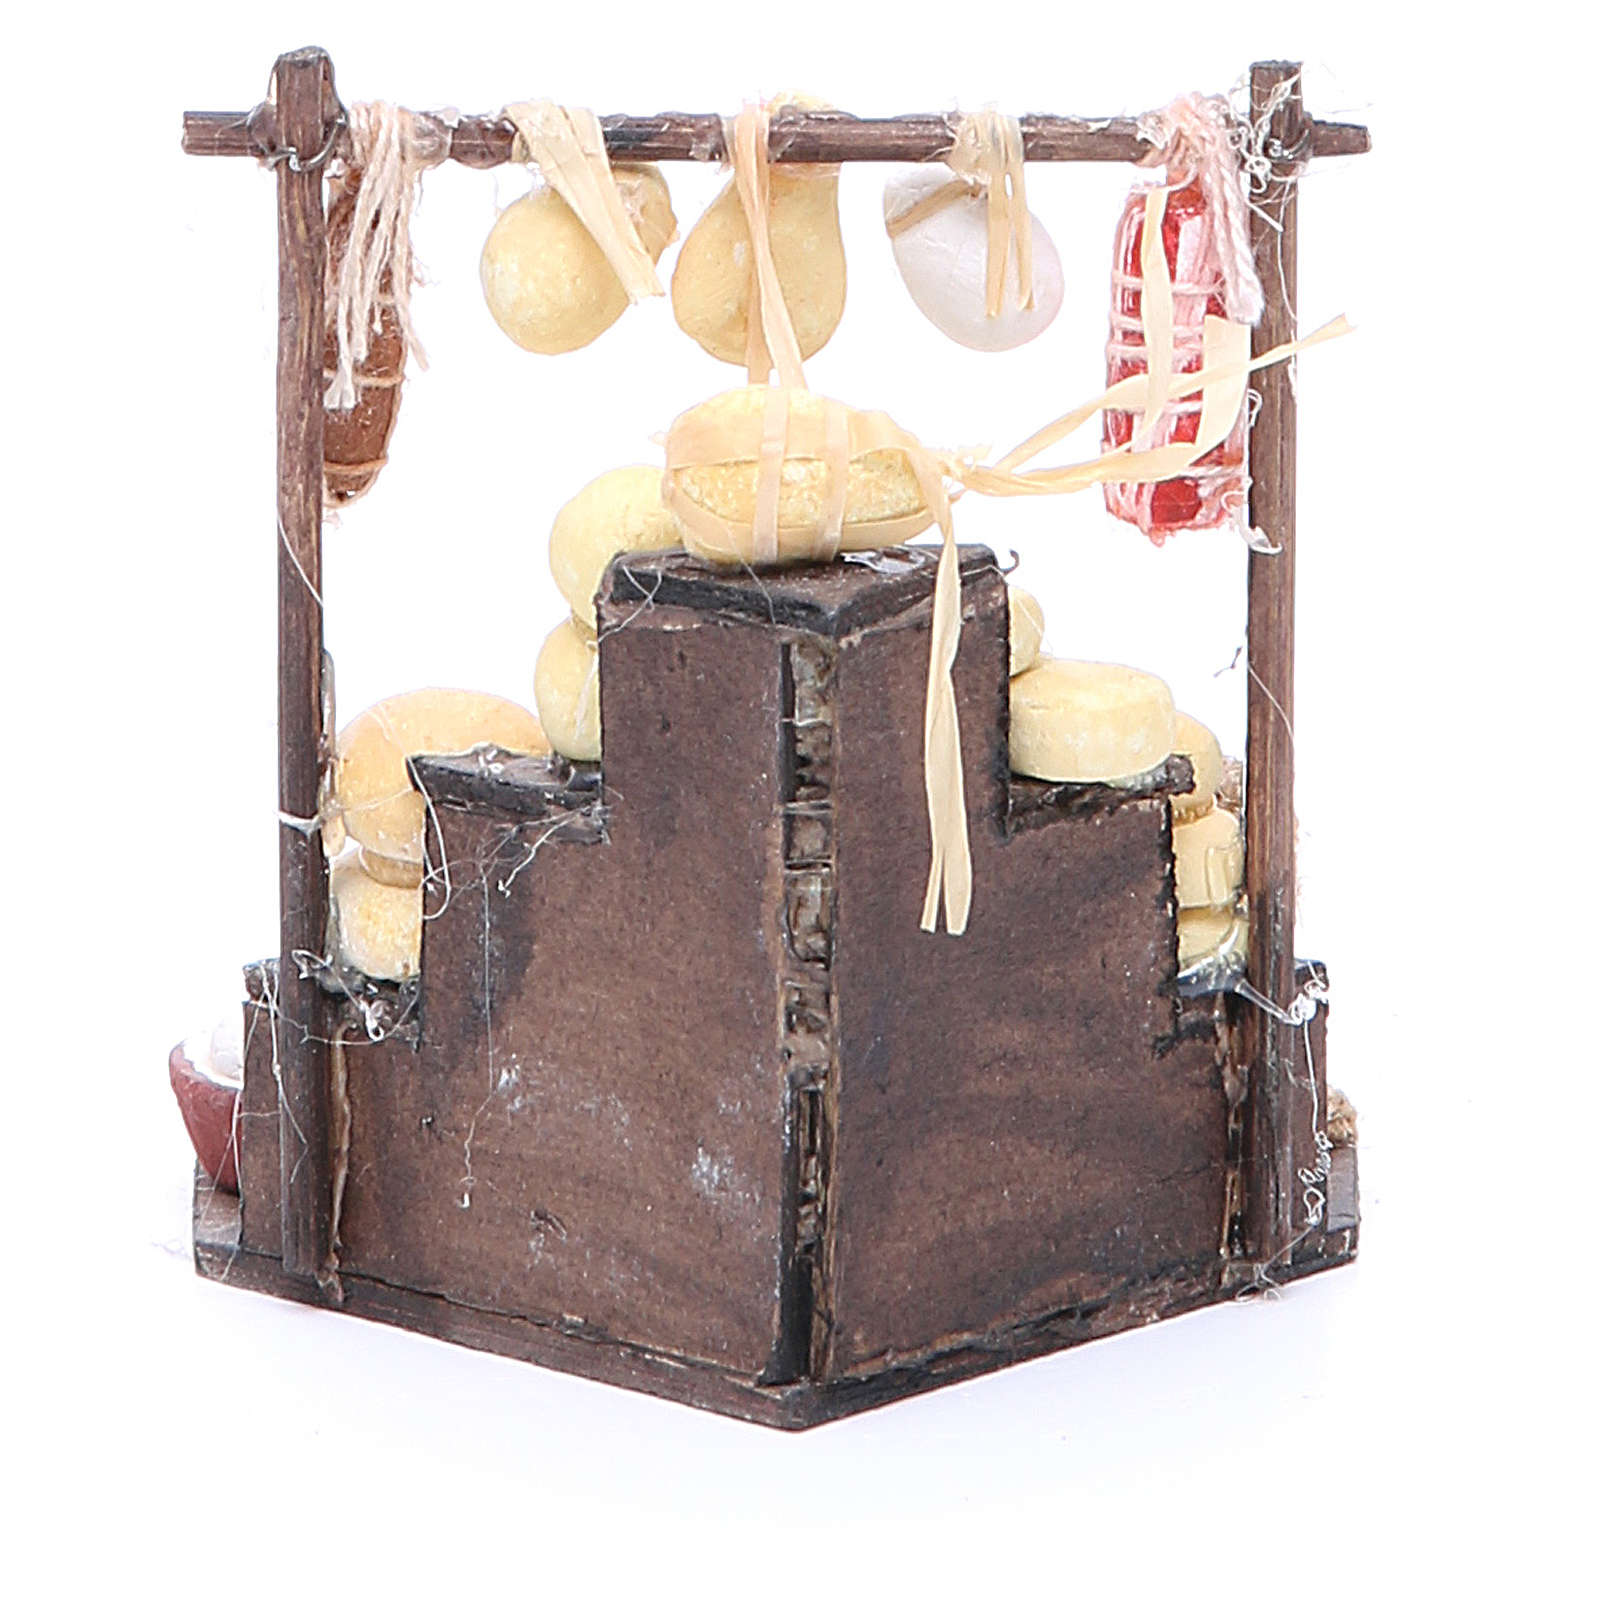 Cured meat stall for Neapolitan Nativity, measuring 7x12x7cm 4